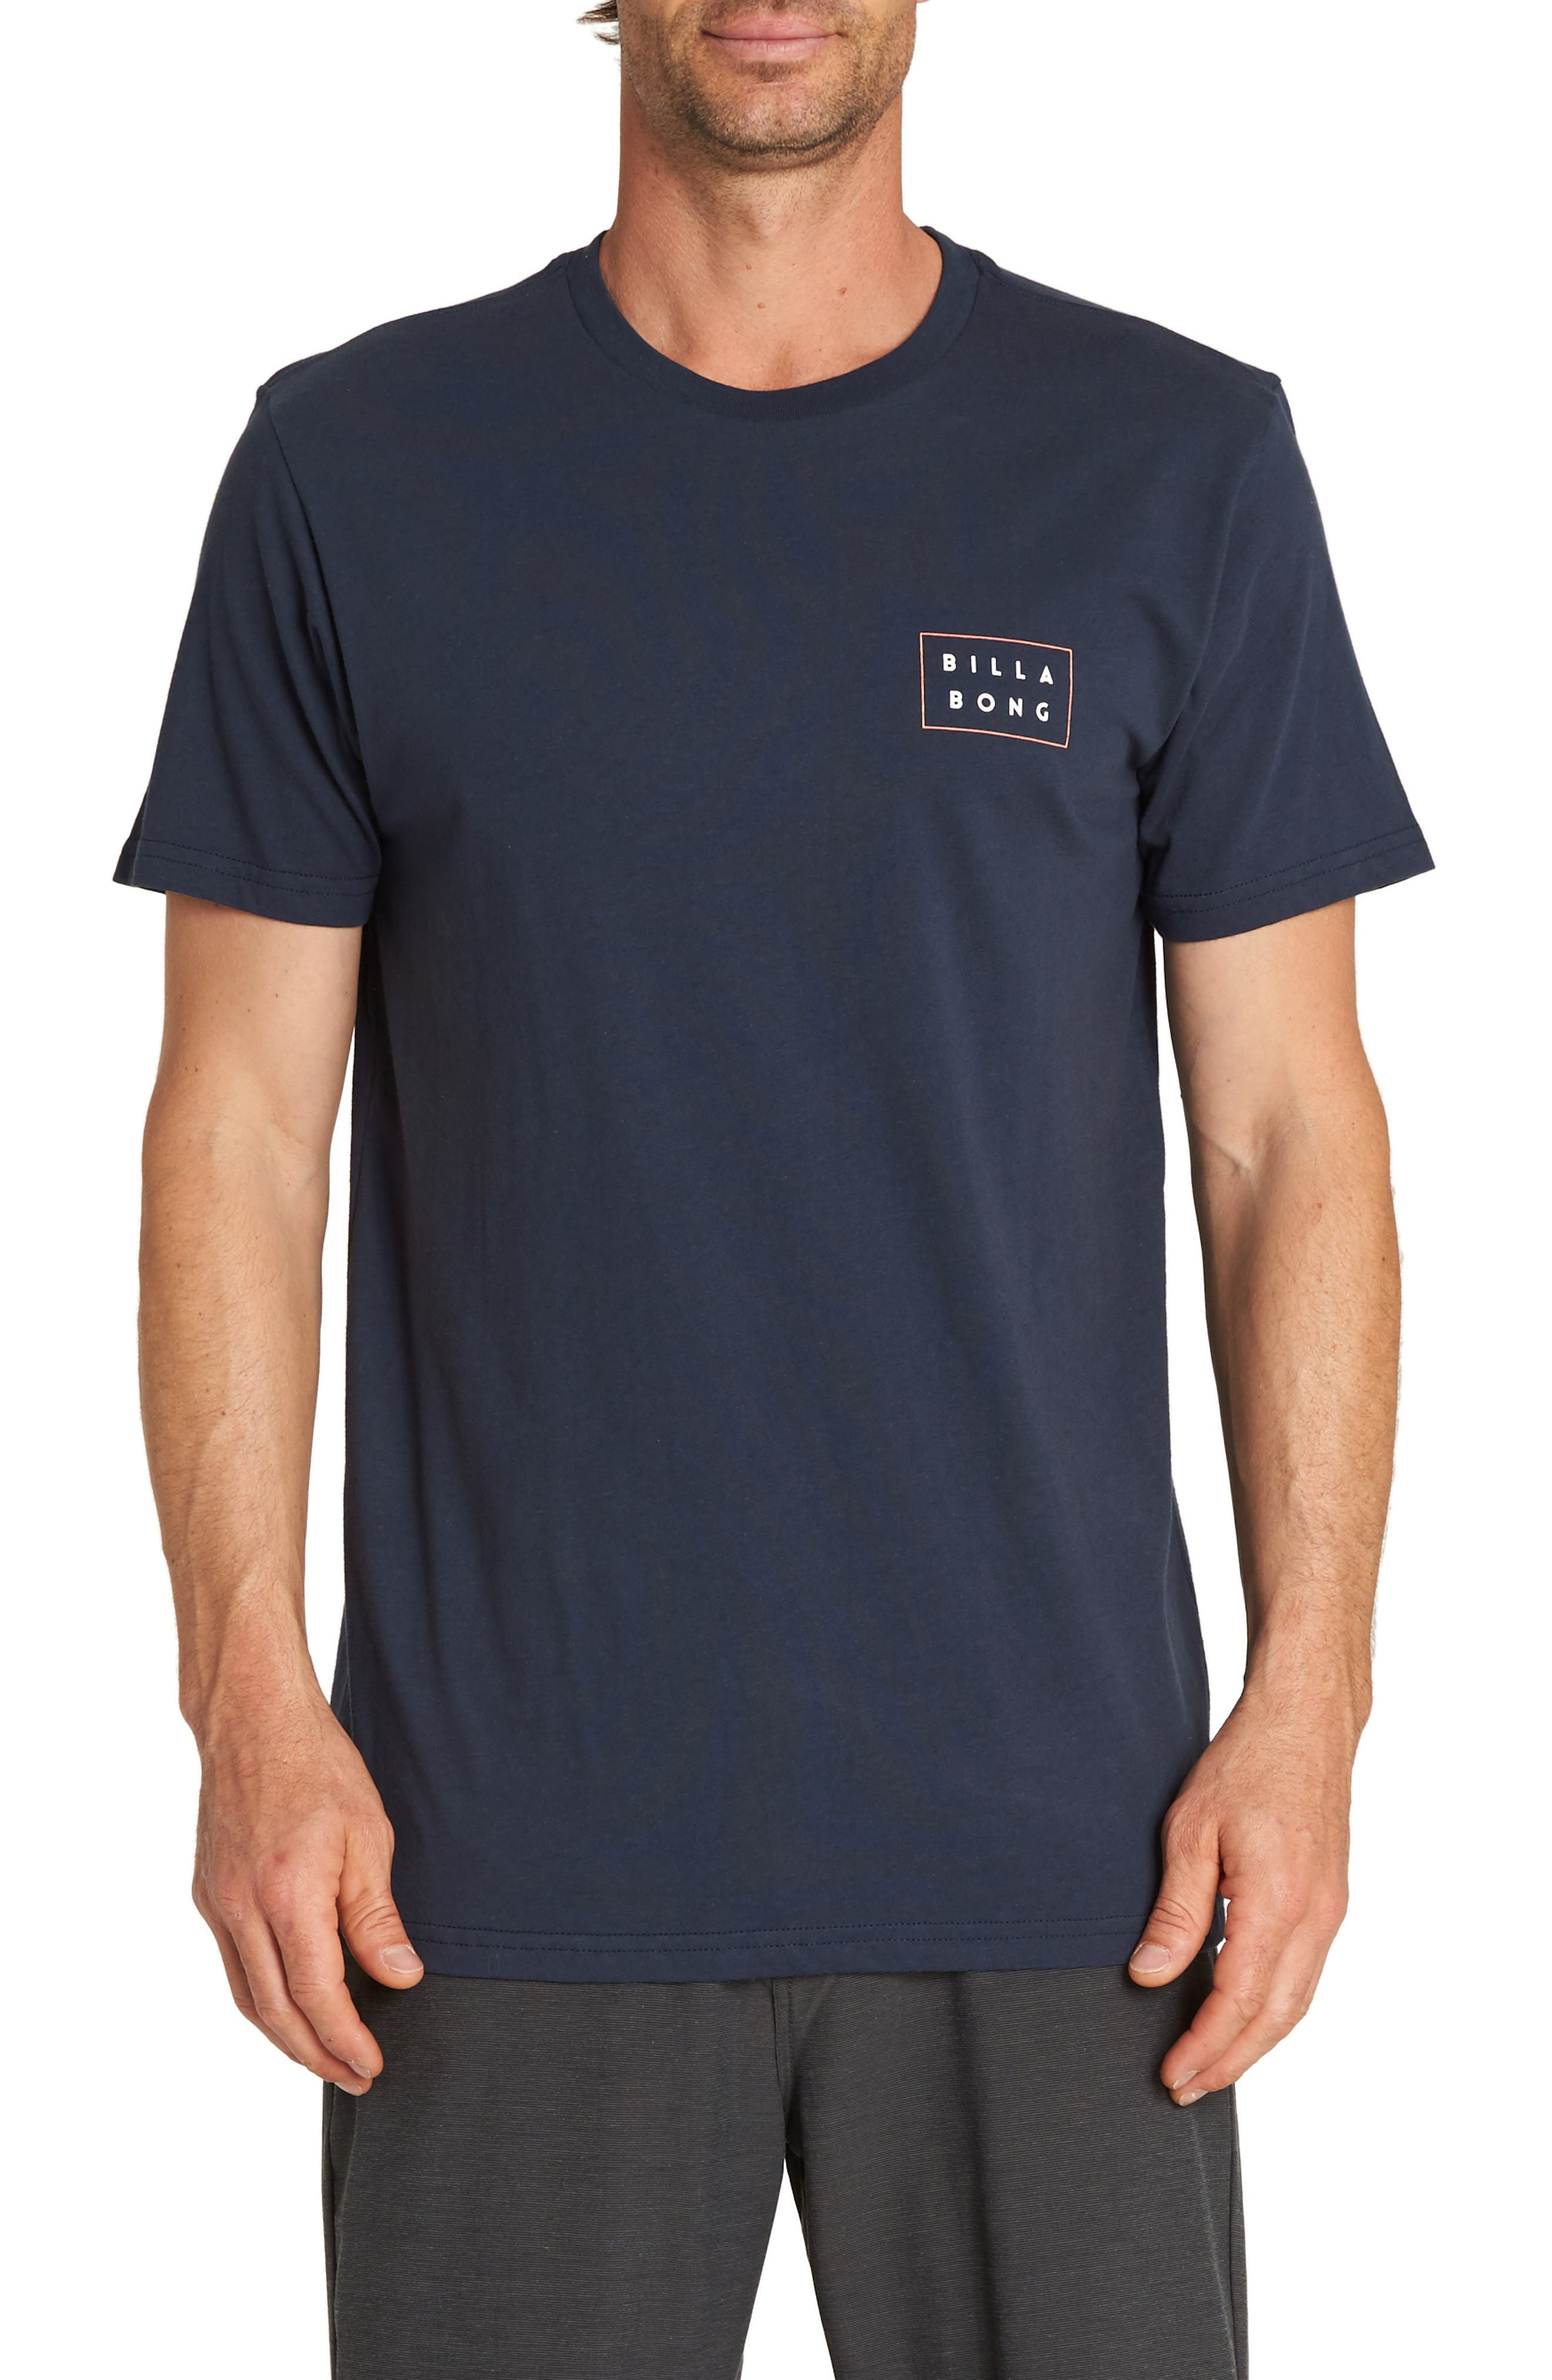 Die Cut Fill T-Shirt,                             Main thumbnail 1, color,                             NAVY